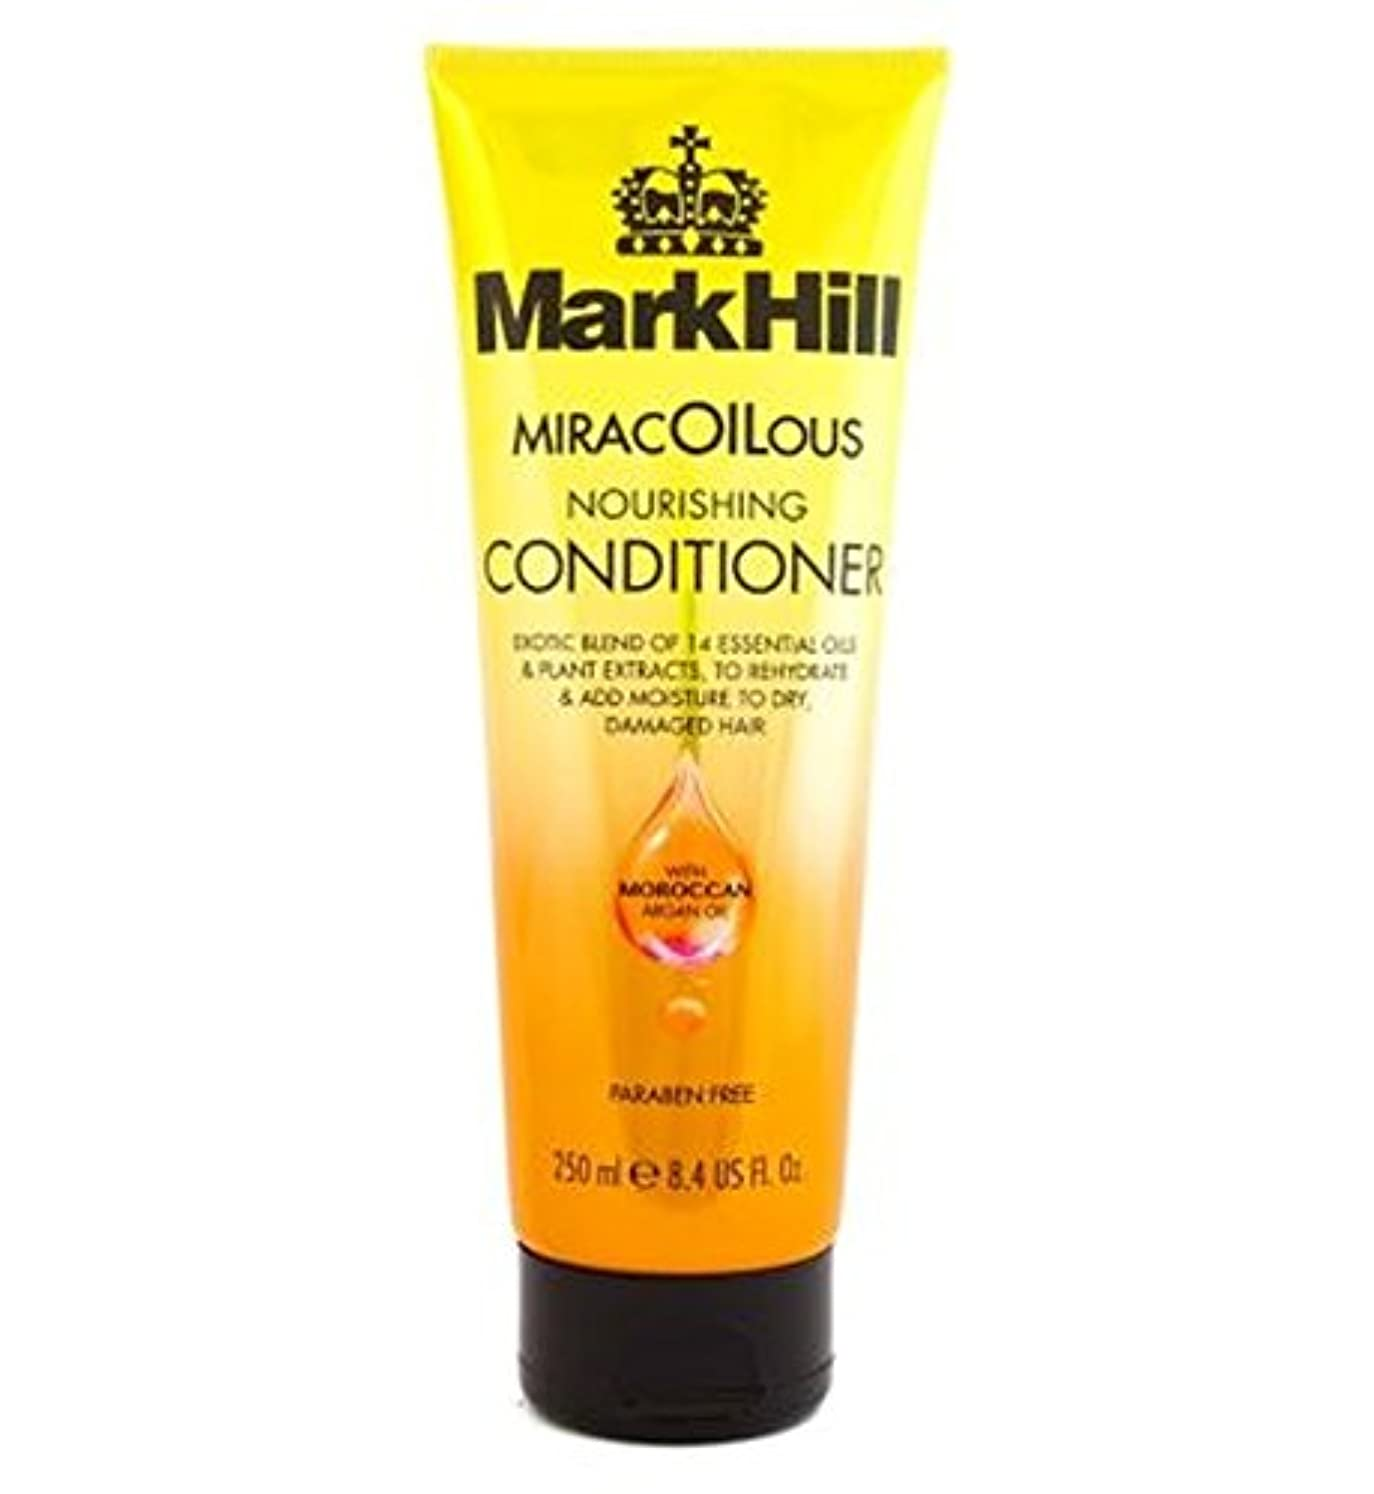 Mark Hill MiracOILicious Conditioner 250ml - マーク丘Miracoiliciousコンディショナー250Ml (Mark Hill) [並行輸入品]